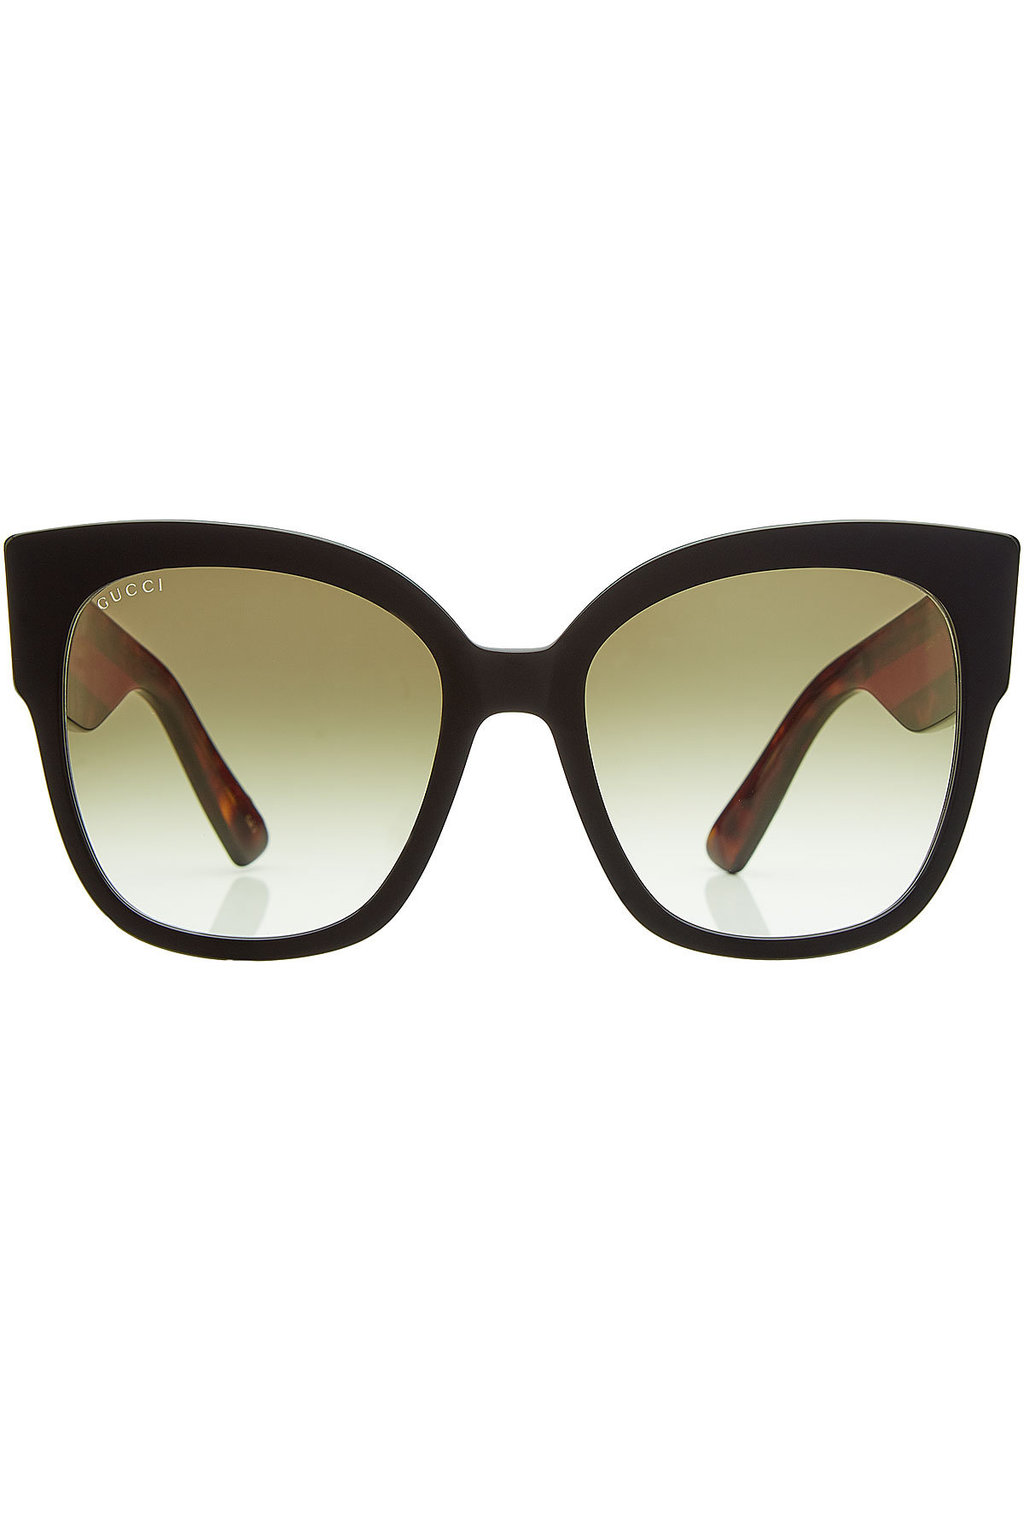 Square Sunglasses - predominant colour: black; occasions: casual, holiday; style: square; size: large; material: plastic/rubber; pattern: plain; finish: plain; wardrobe: basic; season: s/s 2017